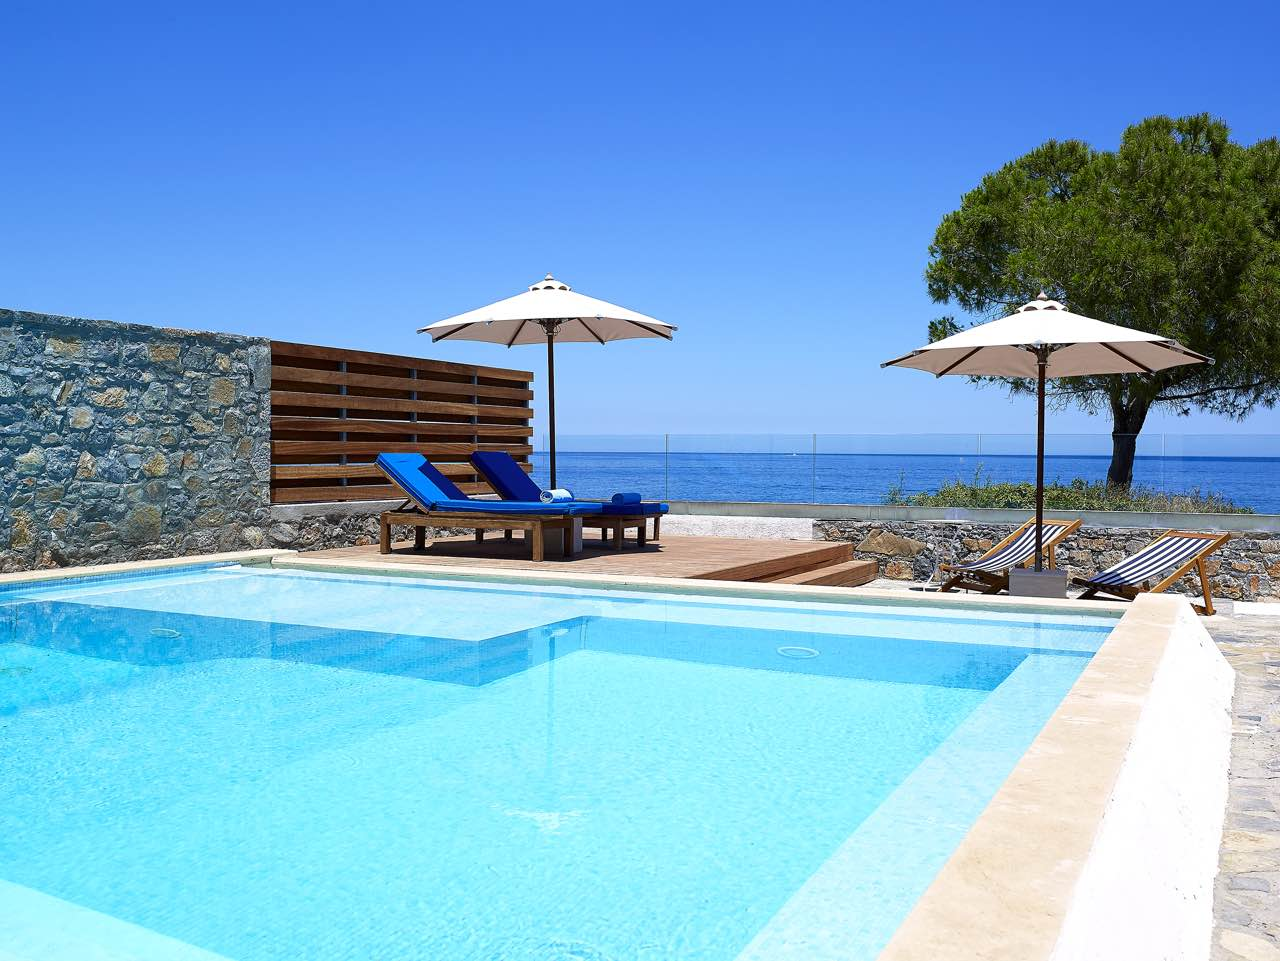 25% Mid Summer Hot Deal At St Nicolas Bay Hotel - Agios Nikolaos - Crete